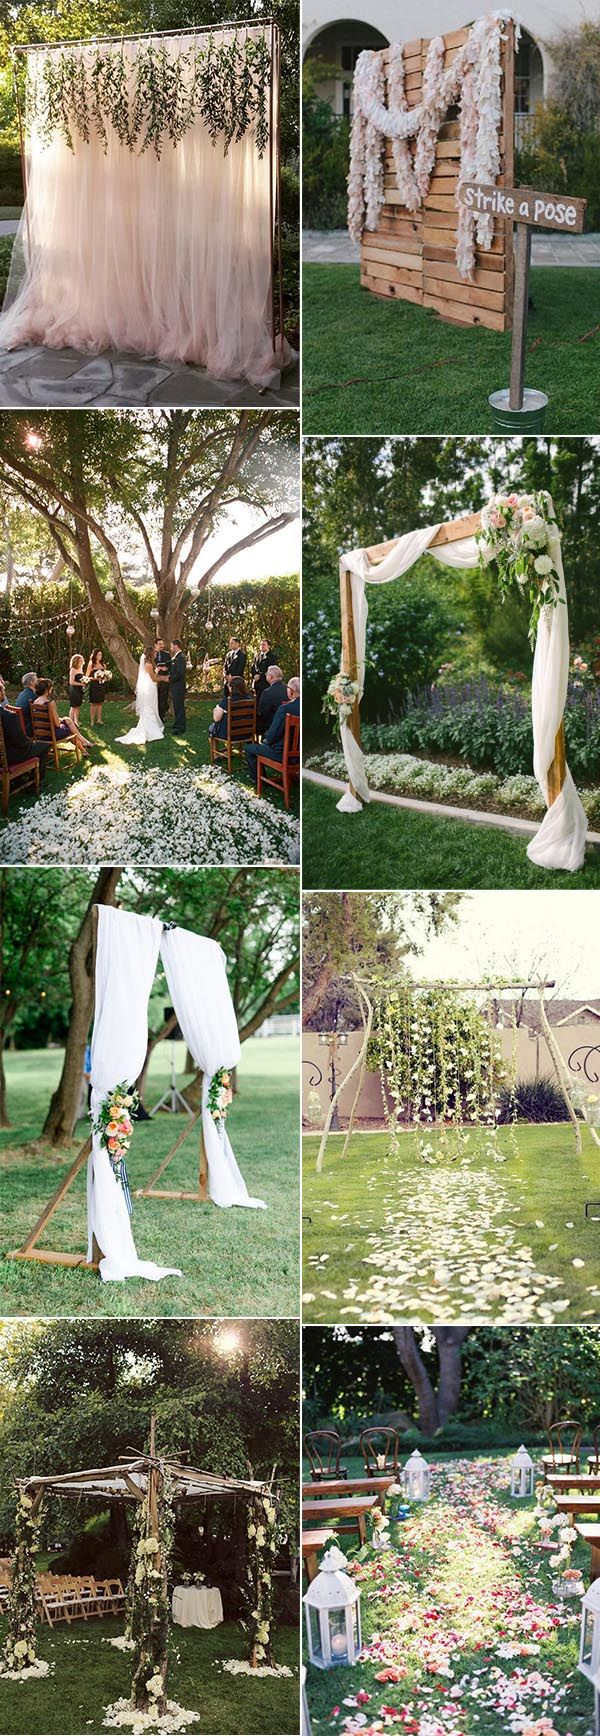 c35acdf56c 30 Sweet Ideas For Intimate Backyard Outdoor Weddings